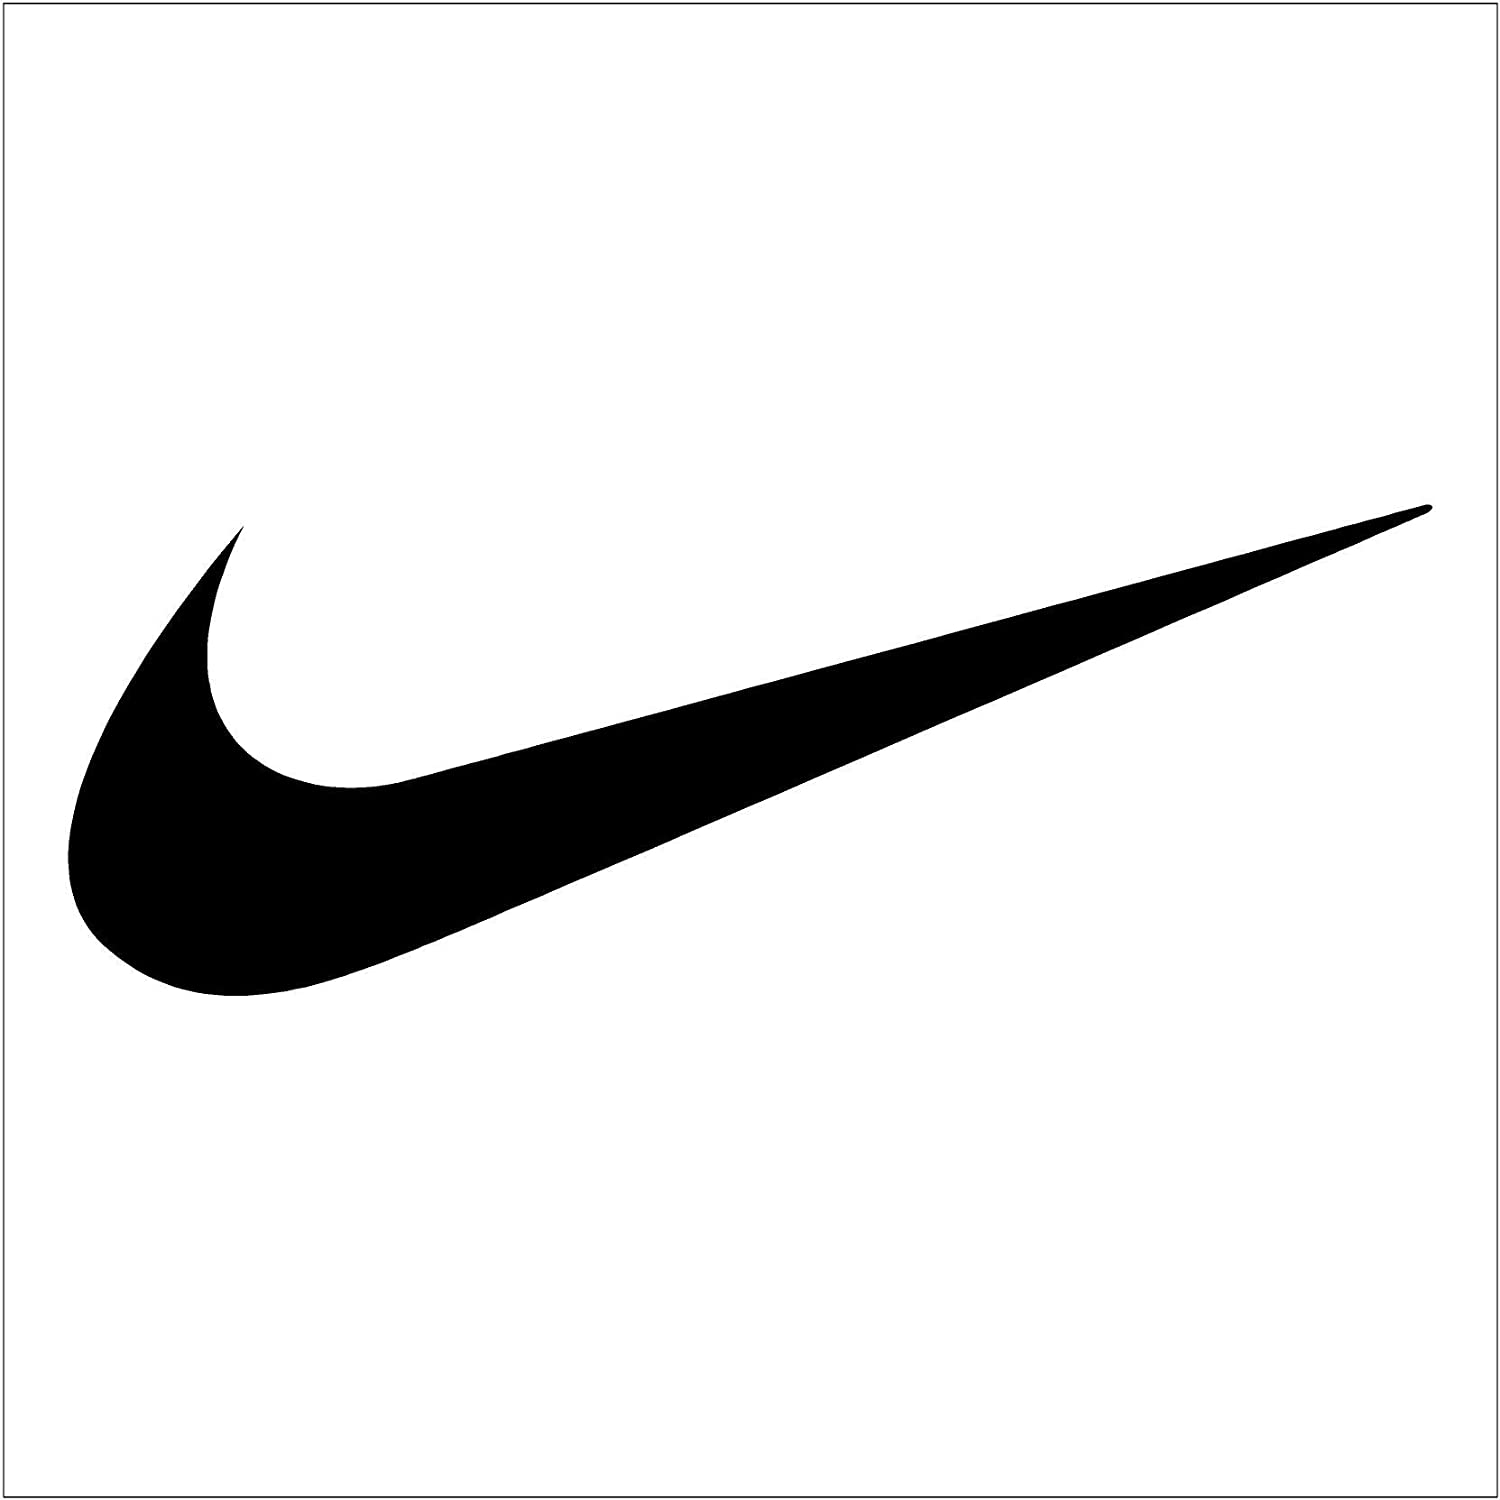 brand new 9ee64 92c2b Amazon.com  Crawford Graphix Nike Swoosh Logo Vinyl Sticker 2 Pack (6